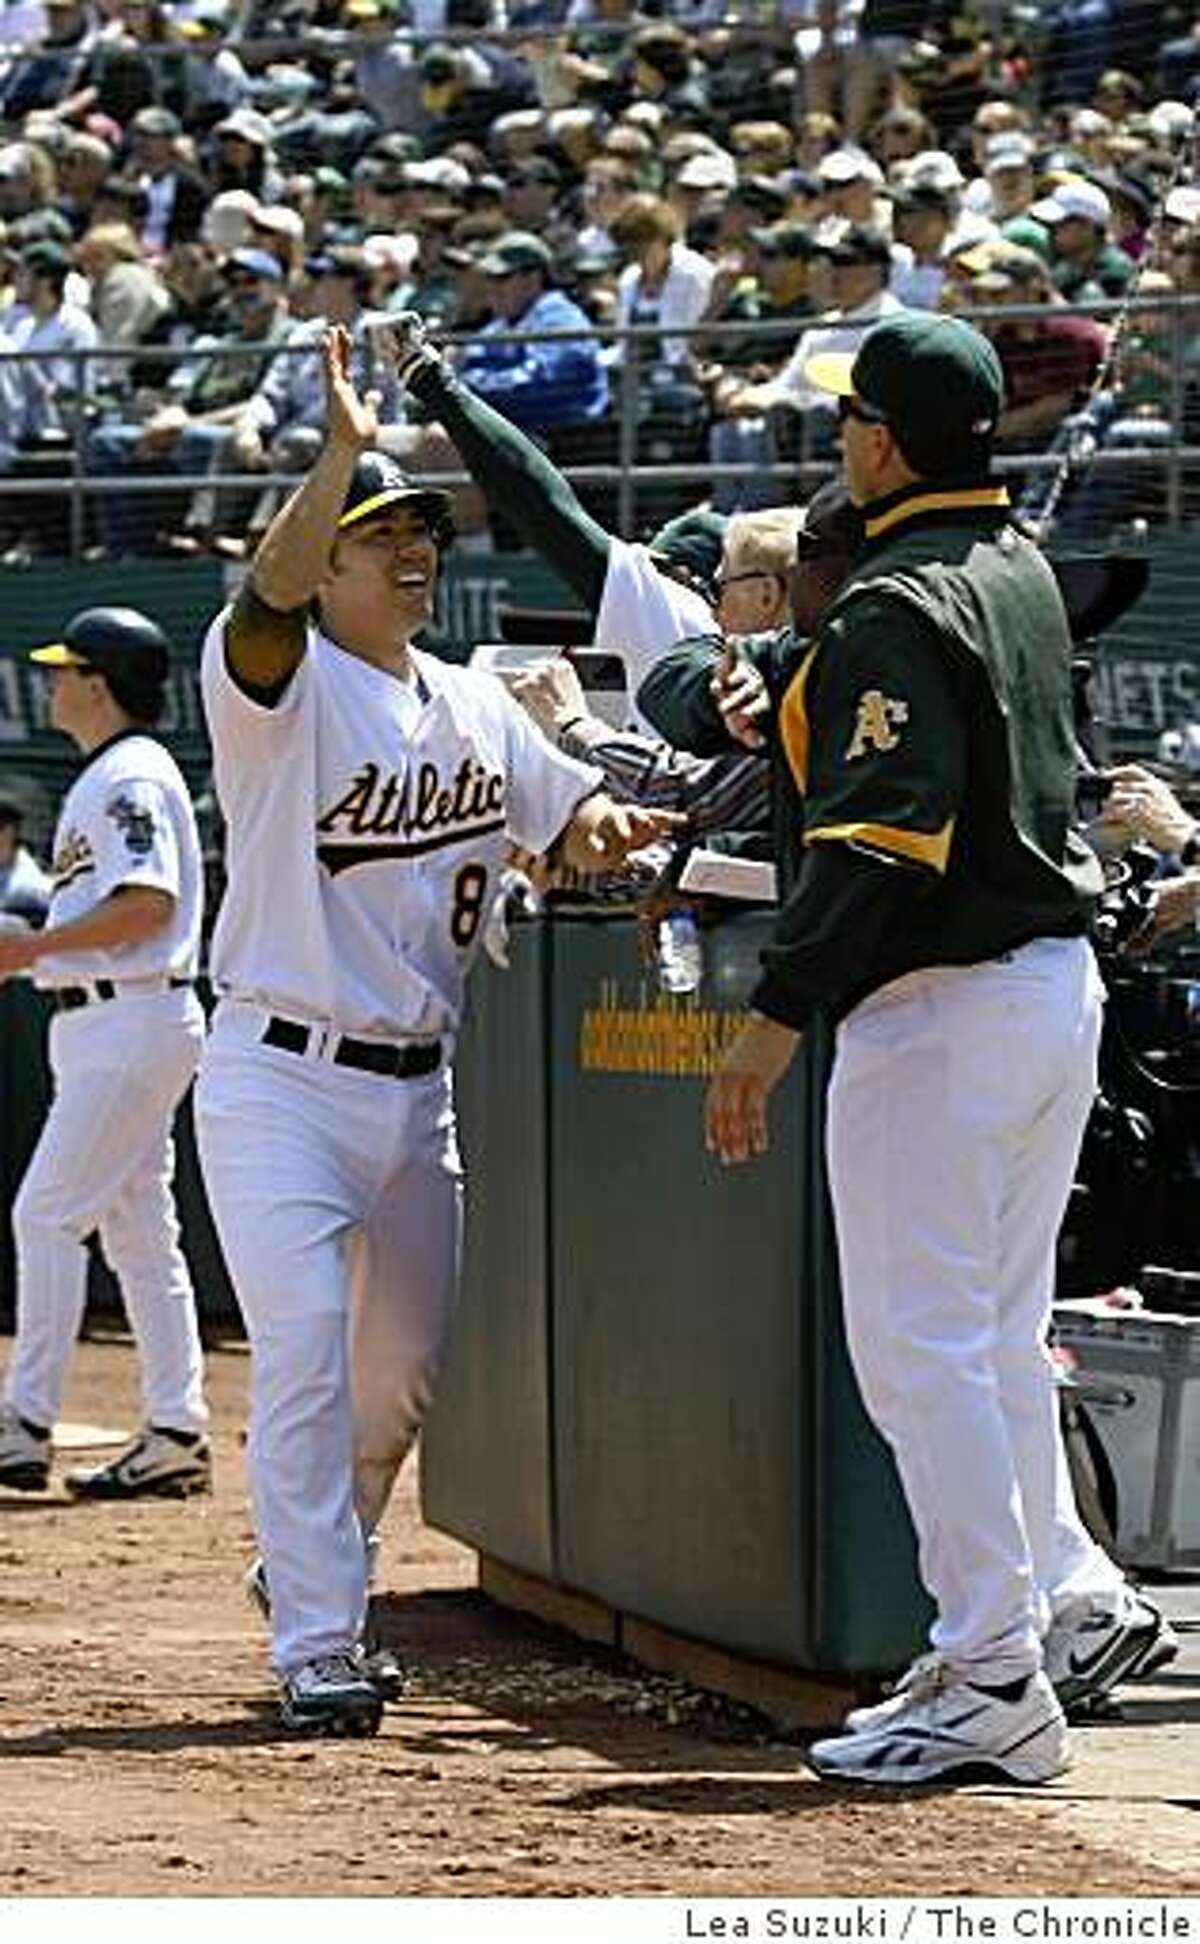 Kurt Suzuki (left) celebrates his run with teammates in the bottom of the second after scoring on Ellis' single to center during the Oakland Athletics vs, Tampa Bay Rays game on Sunday April 26, 2009 in Oakland.